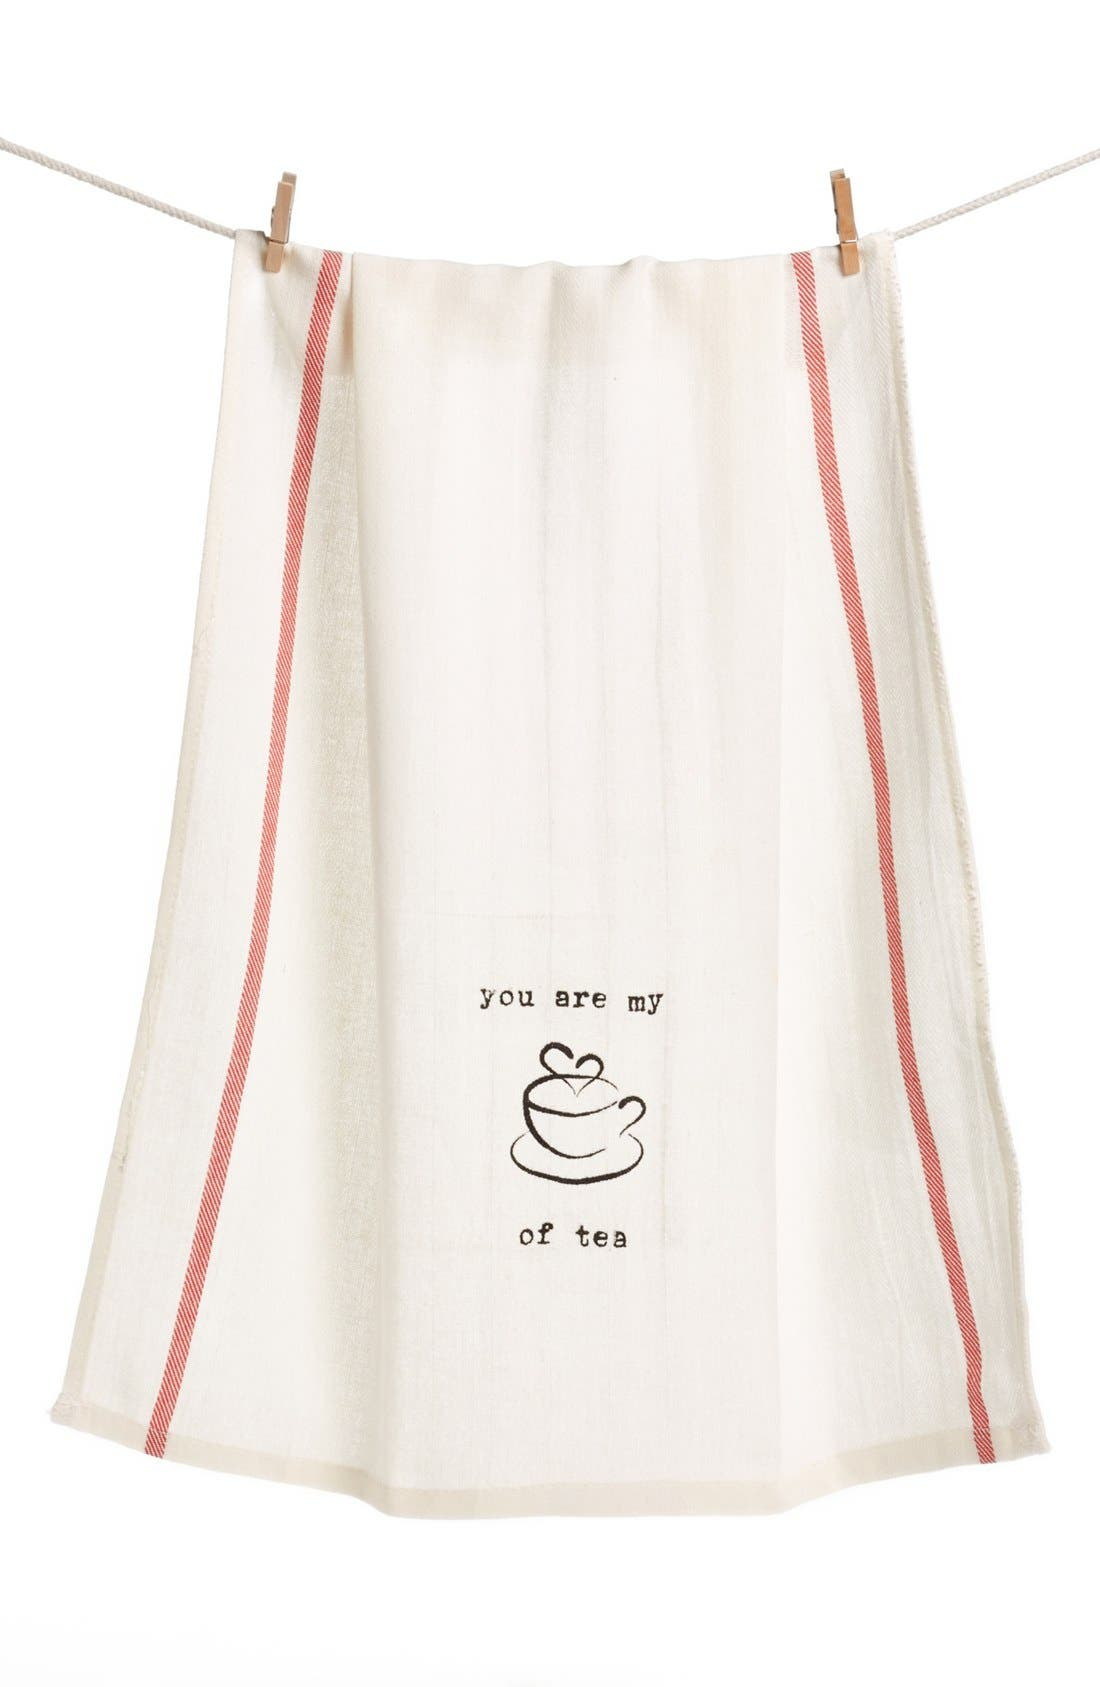 Alternate Image 1 Selected - Second Nature by Hand 'You Are My Cup of Tea' Dish Towel